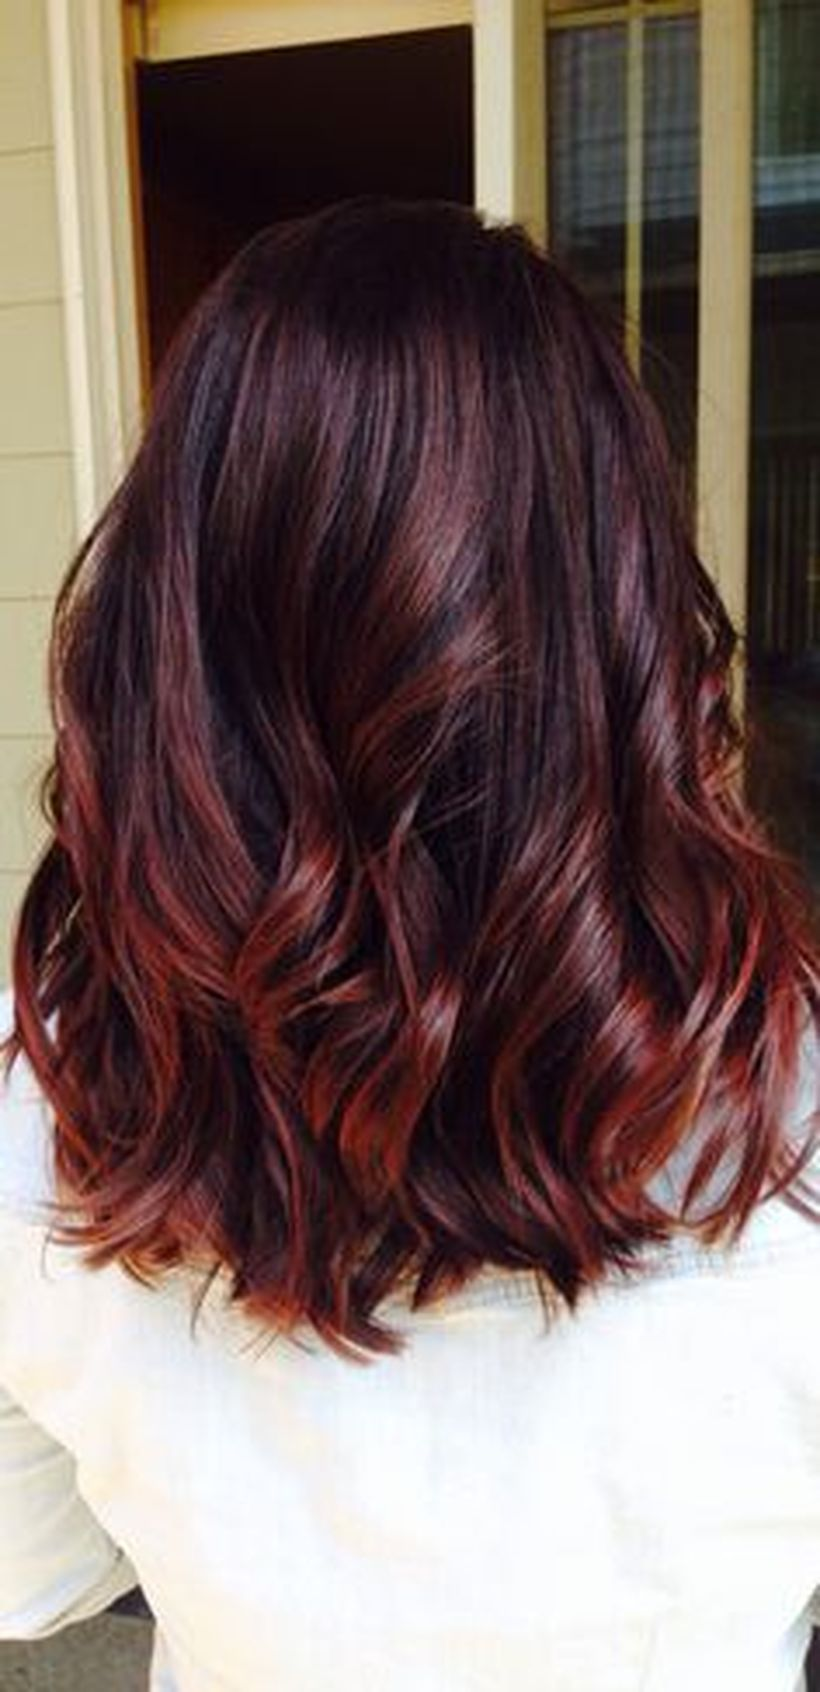 stunning fall hairstyle colors ideas for brunettes hair